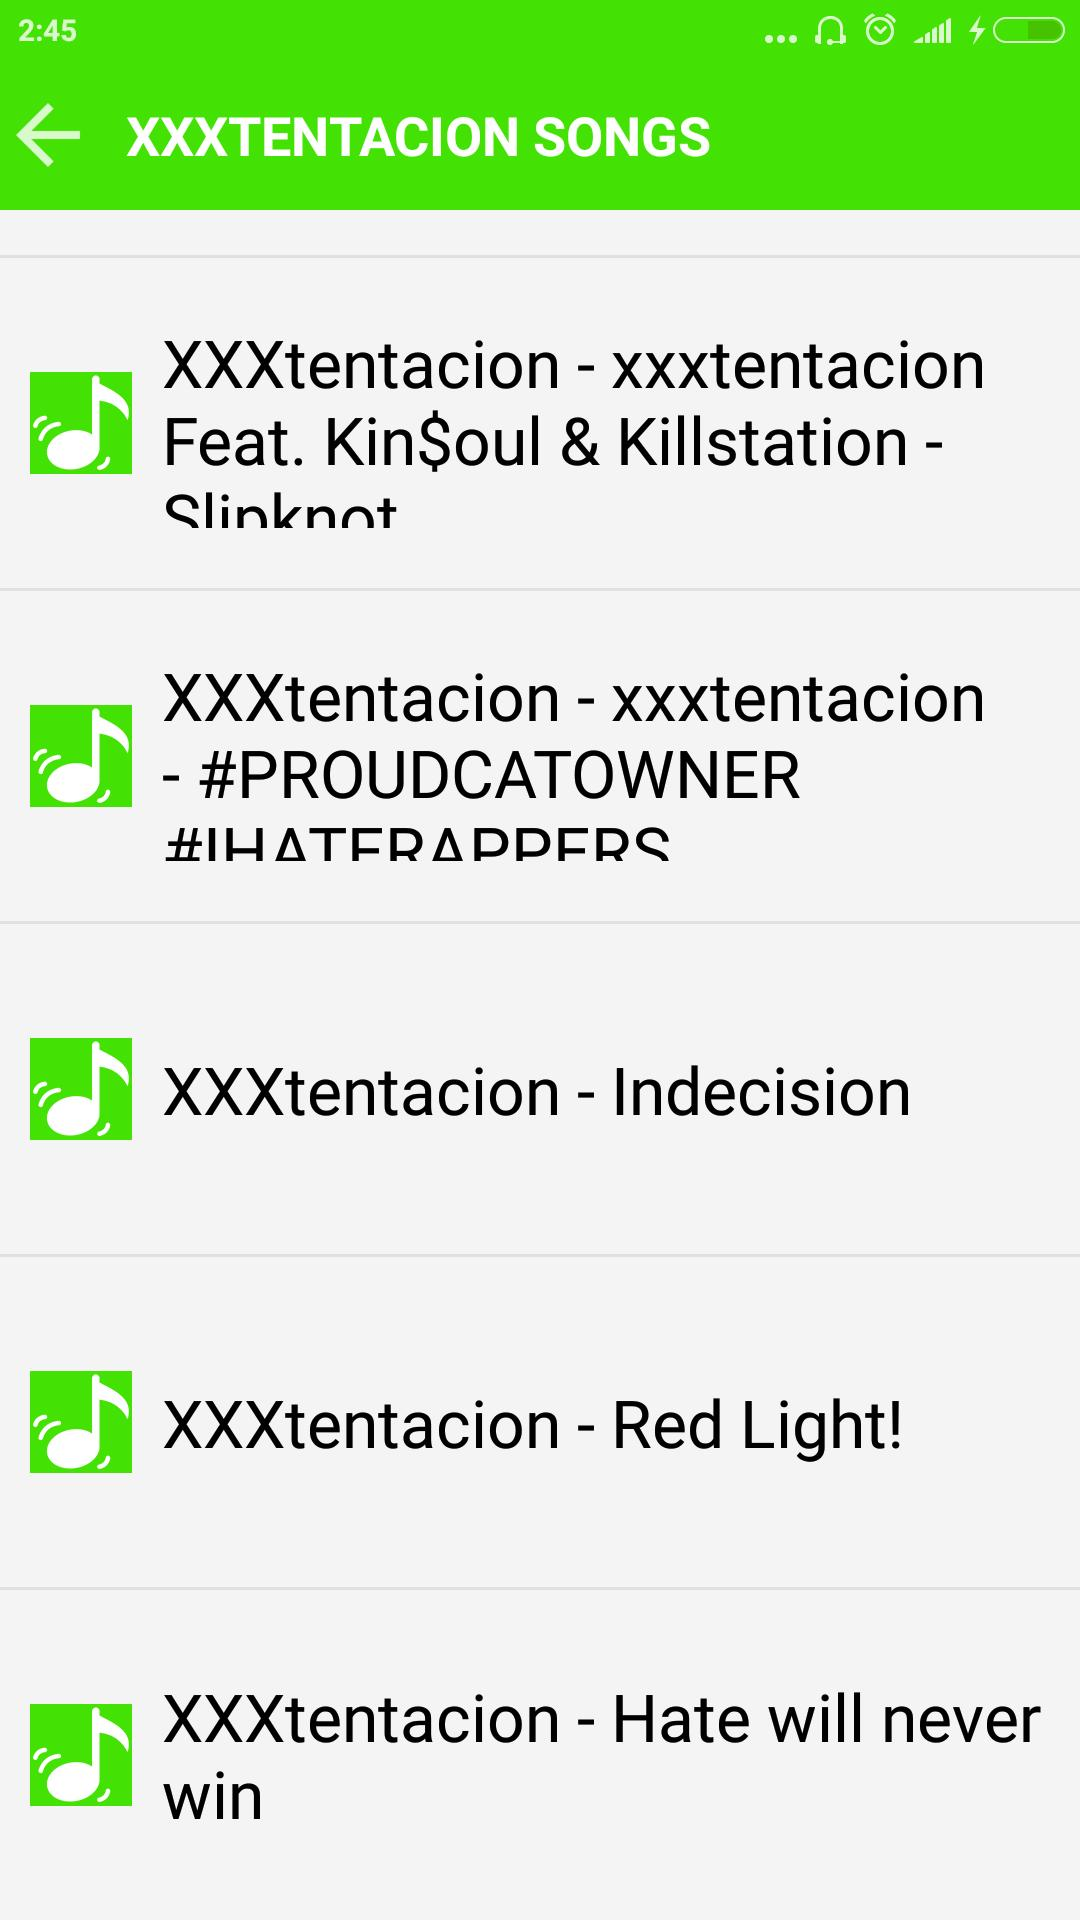 Xxxtentacion All Songs For Android Apk Download